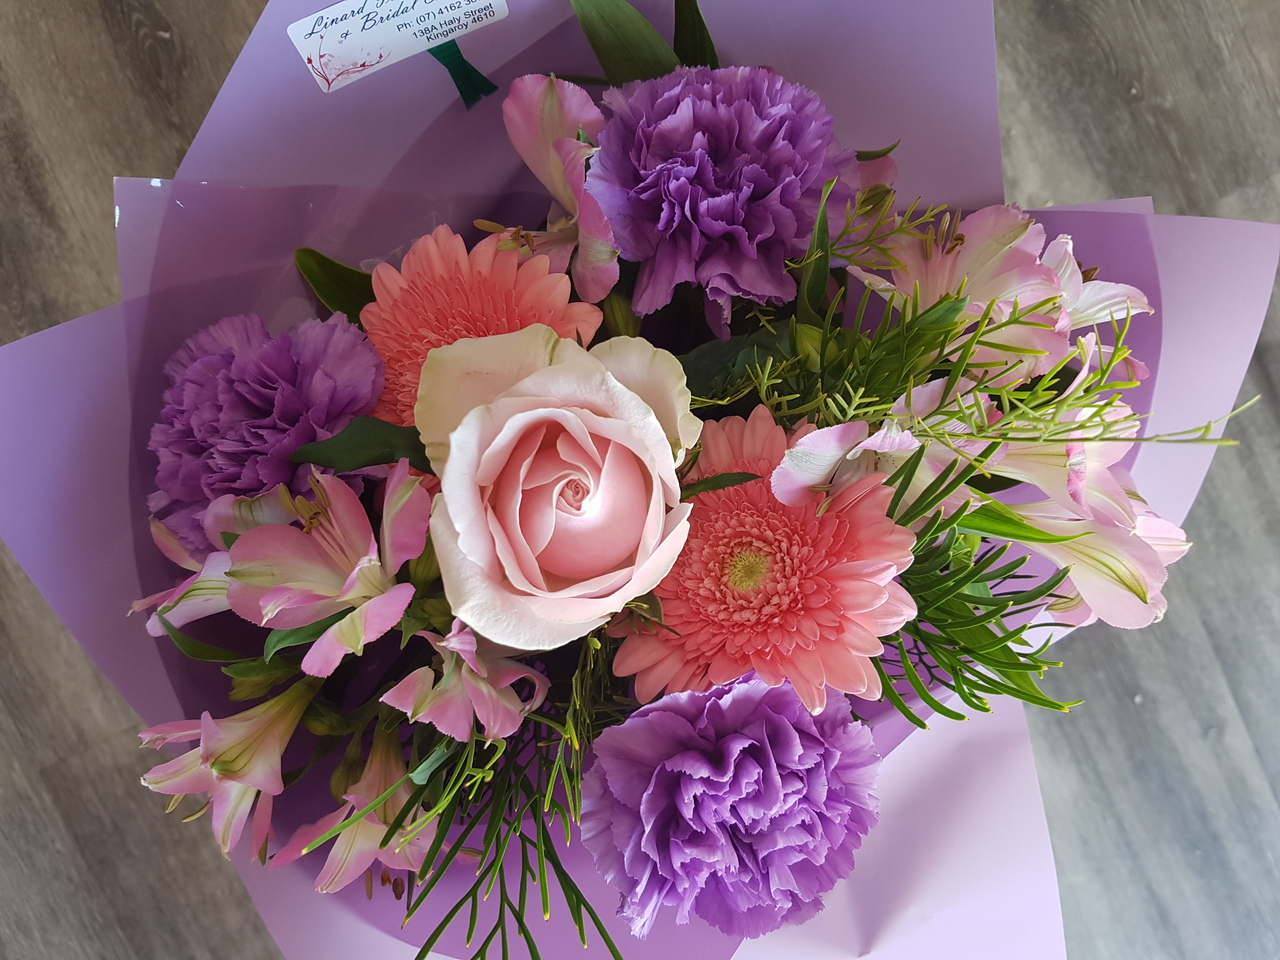 THE SUGGESTED FLORIST CHOICE BOUQUET IS MADE FROM FRESH, BEAUTIFUL,  SEASONAL FLOWERS. PRICING IS A MINIMUM OF $50 AND THE BOUQUET CAN BE MADE TO ANY VALUE BEYOND THE STANDARD MINIMUM PRICE. WE OFFER A VARIETY OF  COLOUR OPTIONS, FROM AS PICTURED, ALSO A VARIETY OF  SOFT COLOURS, OR BRIGHTER ORANGE, YELLOW MIX.  PLEASE LEAVE US A MESSAGE IN THE COMMENTS SECTION.